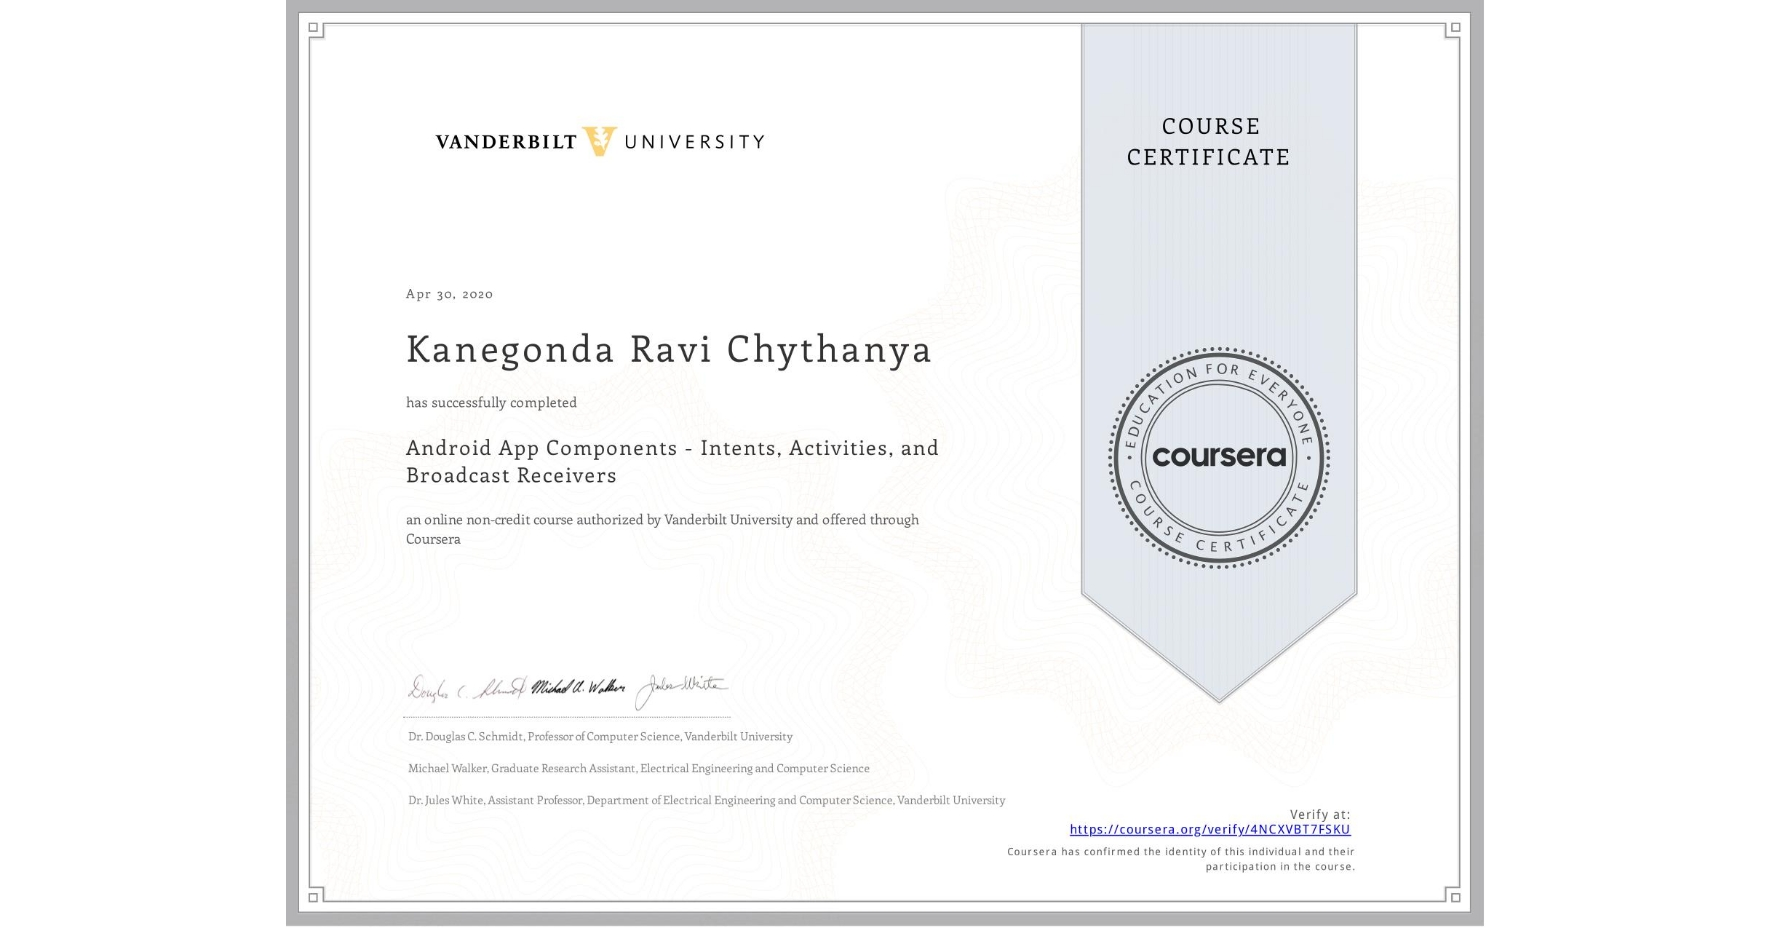 View certificate for Kanegonda Ravi Chythanya, Android App Components - Intents, Activities, and Broadcast Receivers, an online non-credit course authorized by Vanderbilt University and offered through Coursera